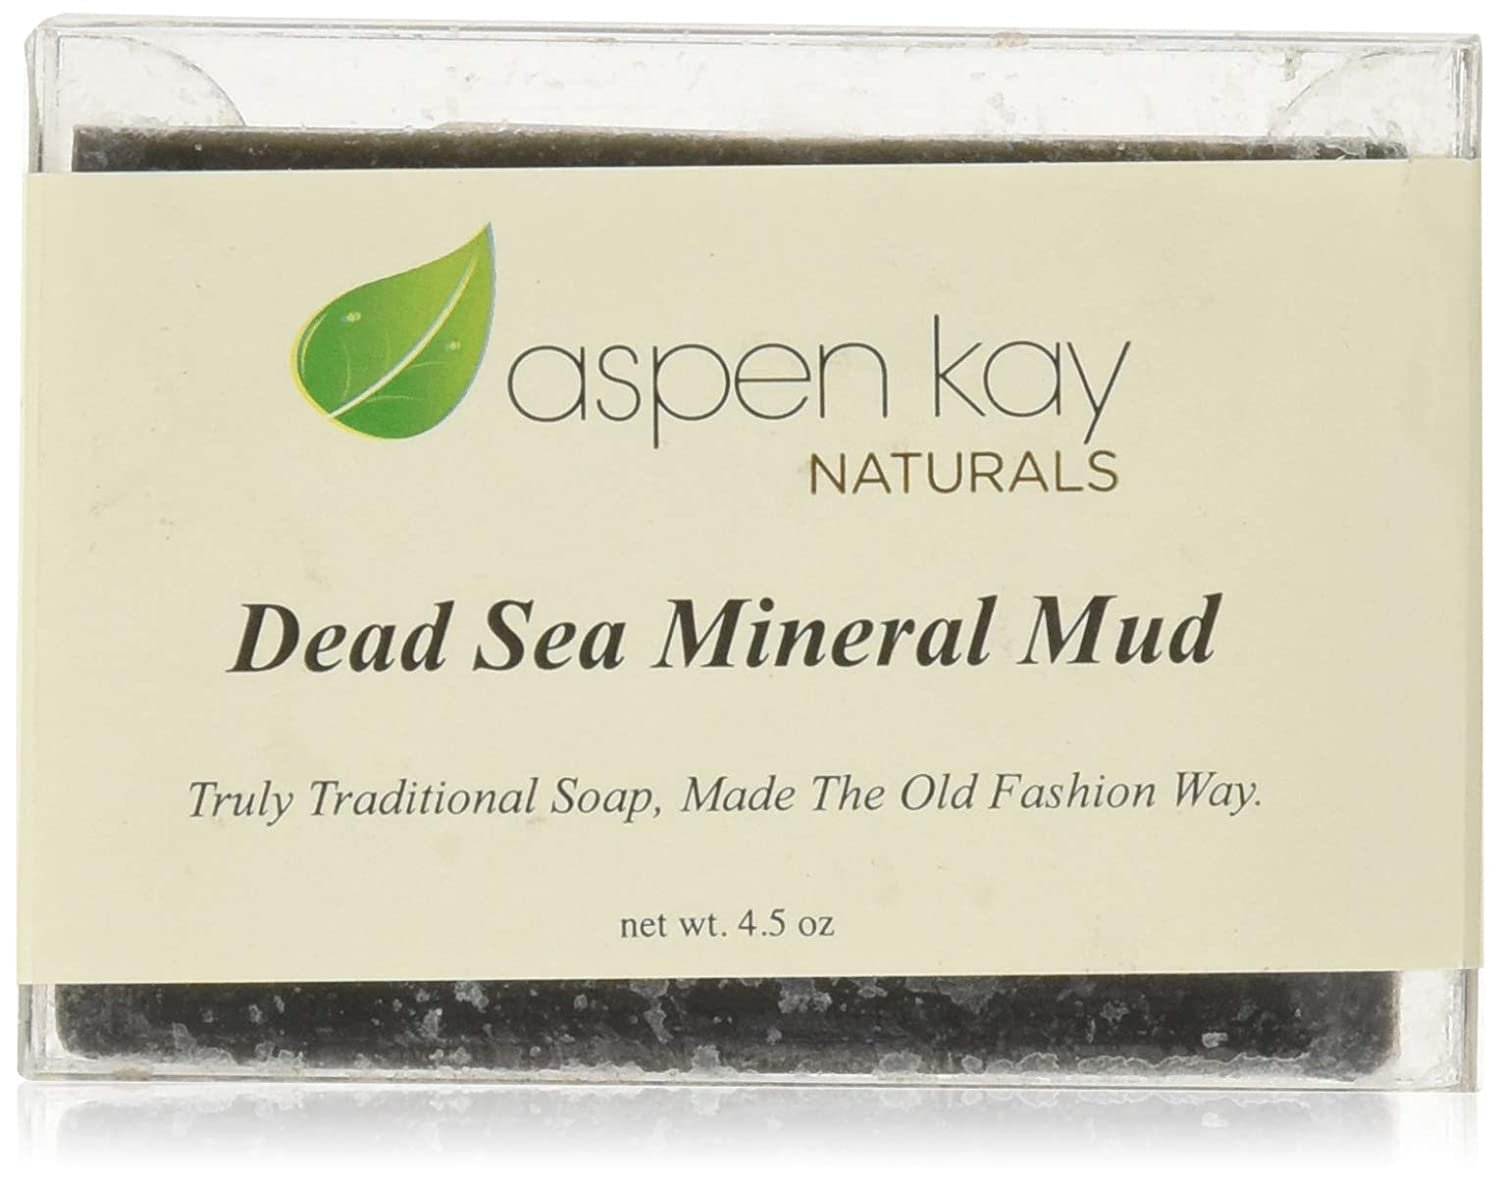 Dead Sea Mud Soap Bar 100% Organic & Natural. With Activated Charcoal & Therapeutic Grade Essential Oils. Face Soap or Body Soap. For Men, Women & Teens. Chemical Free. 4.5oz Bar Aspen Kay Naturals